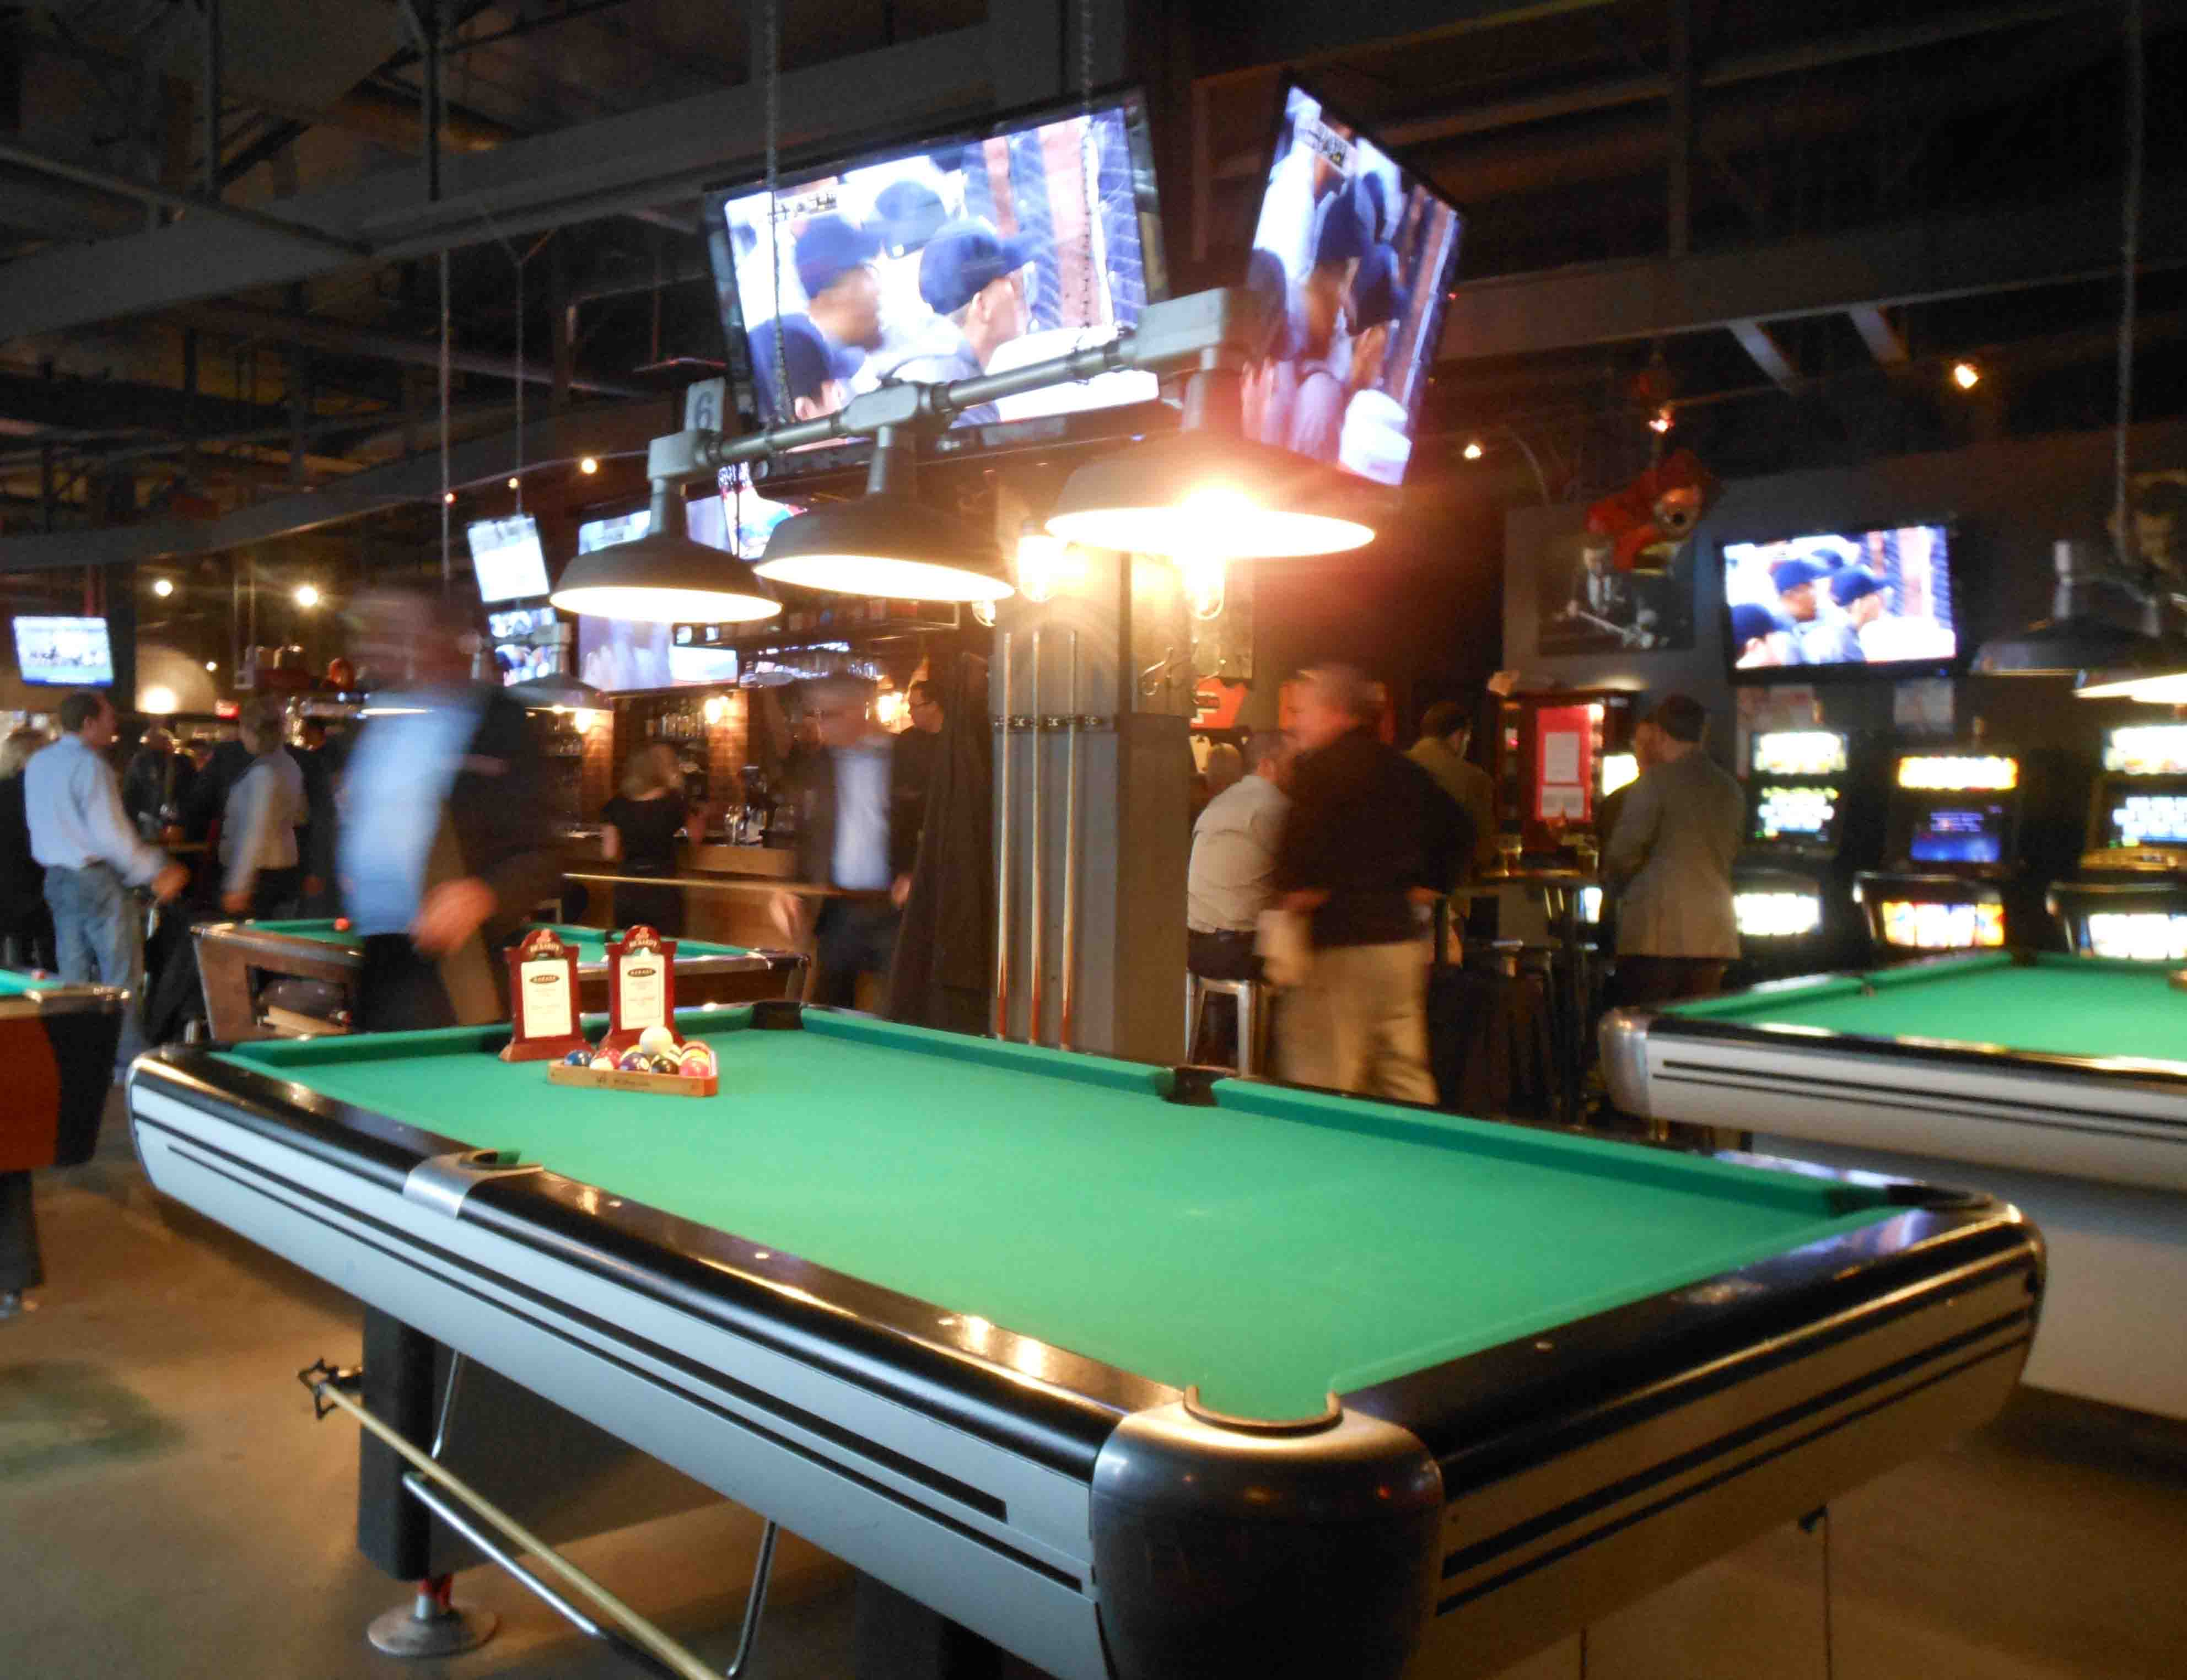 Garage sports bar calgary drink play love pool playing watchthetrailerfo